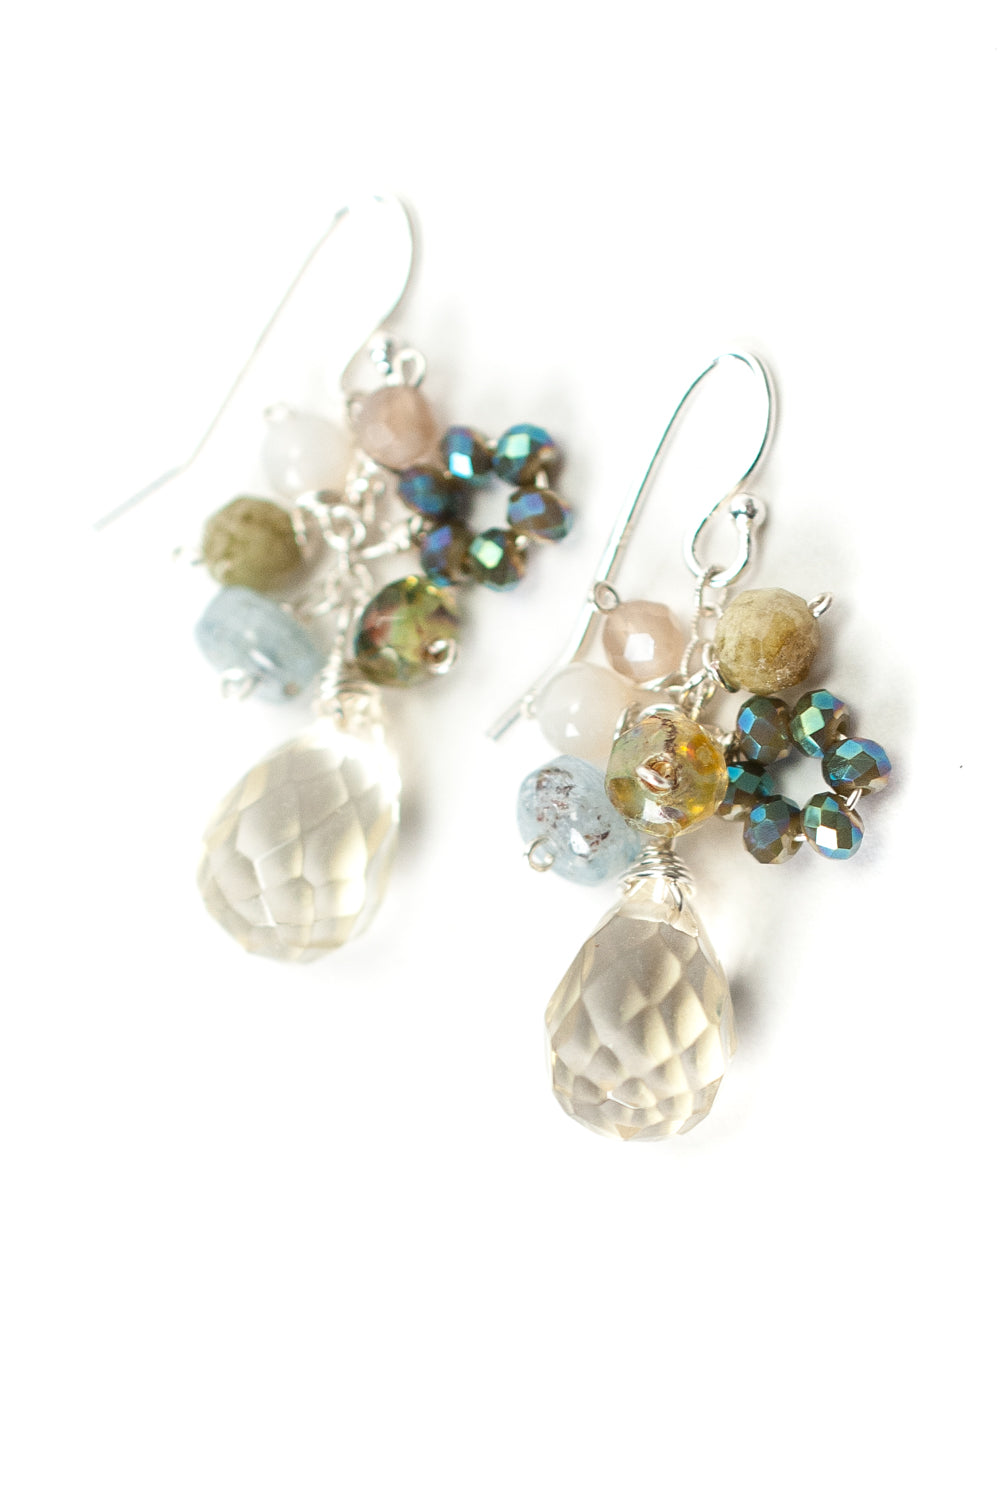 Vision Agate, Green Garnet, Citrine Cluster Earrings